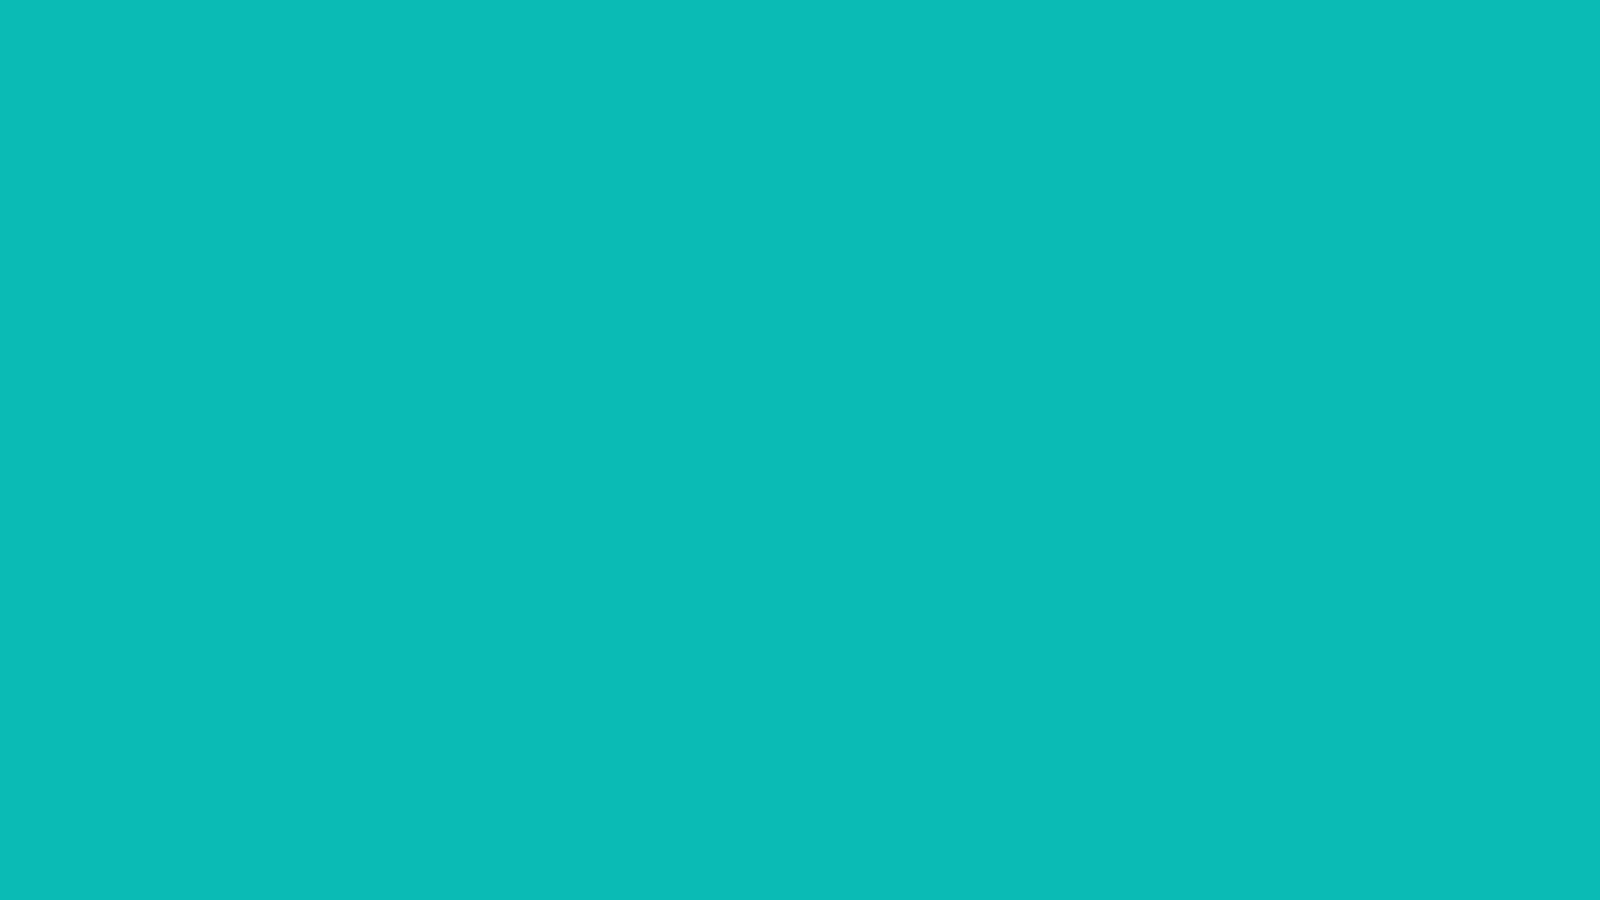 1600x900 Tiffany Blue Solid Color Background